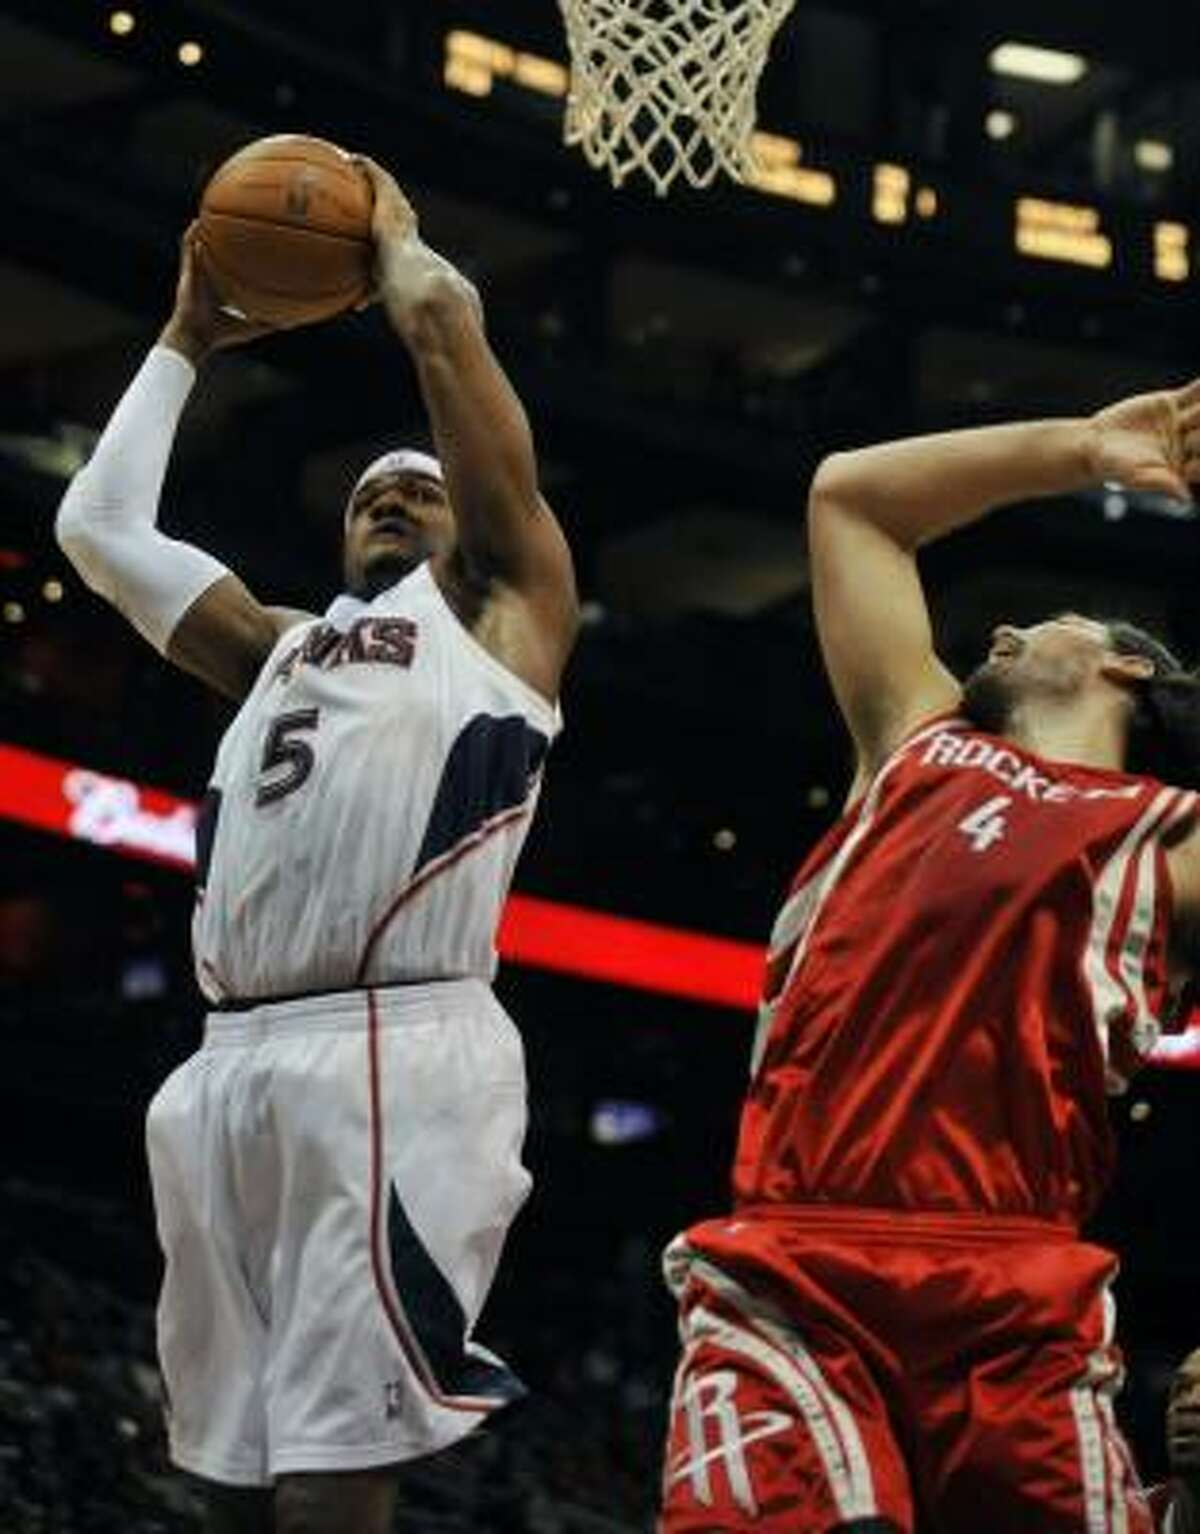 Hawks forward Josh Smith (5) takes a shot against Rockets center Luis Scola during the first quarter.